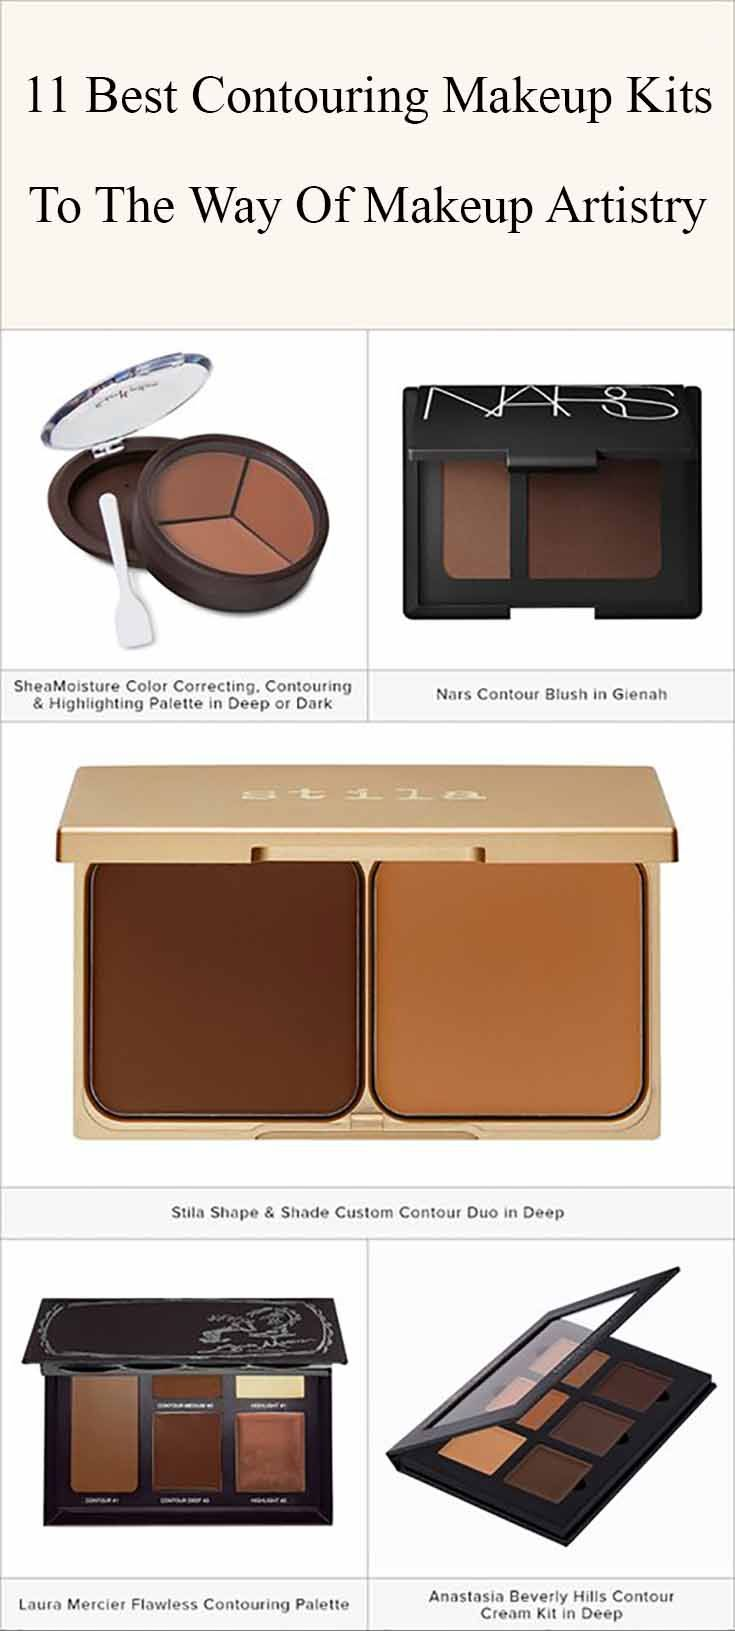 Contouring is one of the most important parts of the makeup process. We  are offering you the best ideas on contouring makeup kits to show you the path  to makeup artistry. Discover more: Contouring Makeup tutorial, Contouring  Makeup and highlights